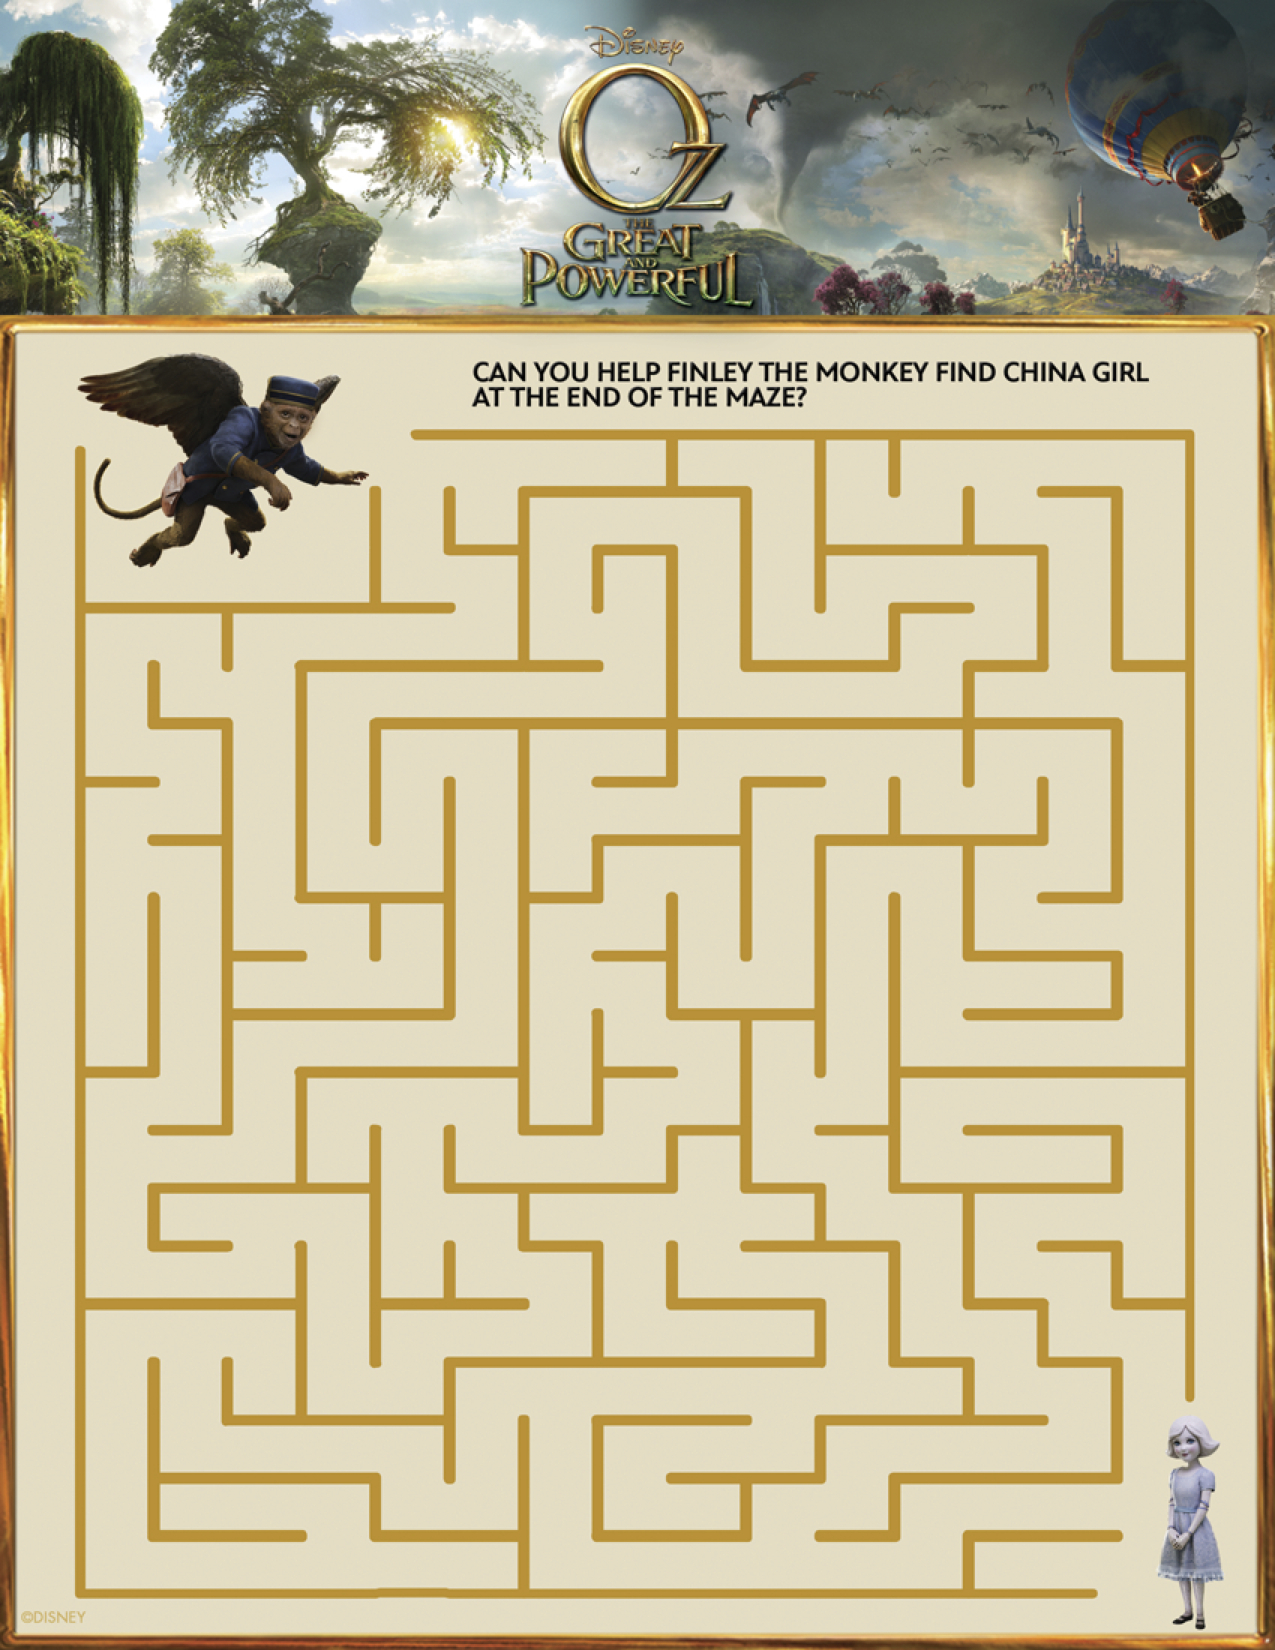 Oz The Great and Powerful Printable Maze